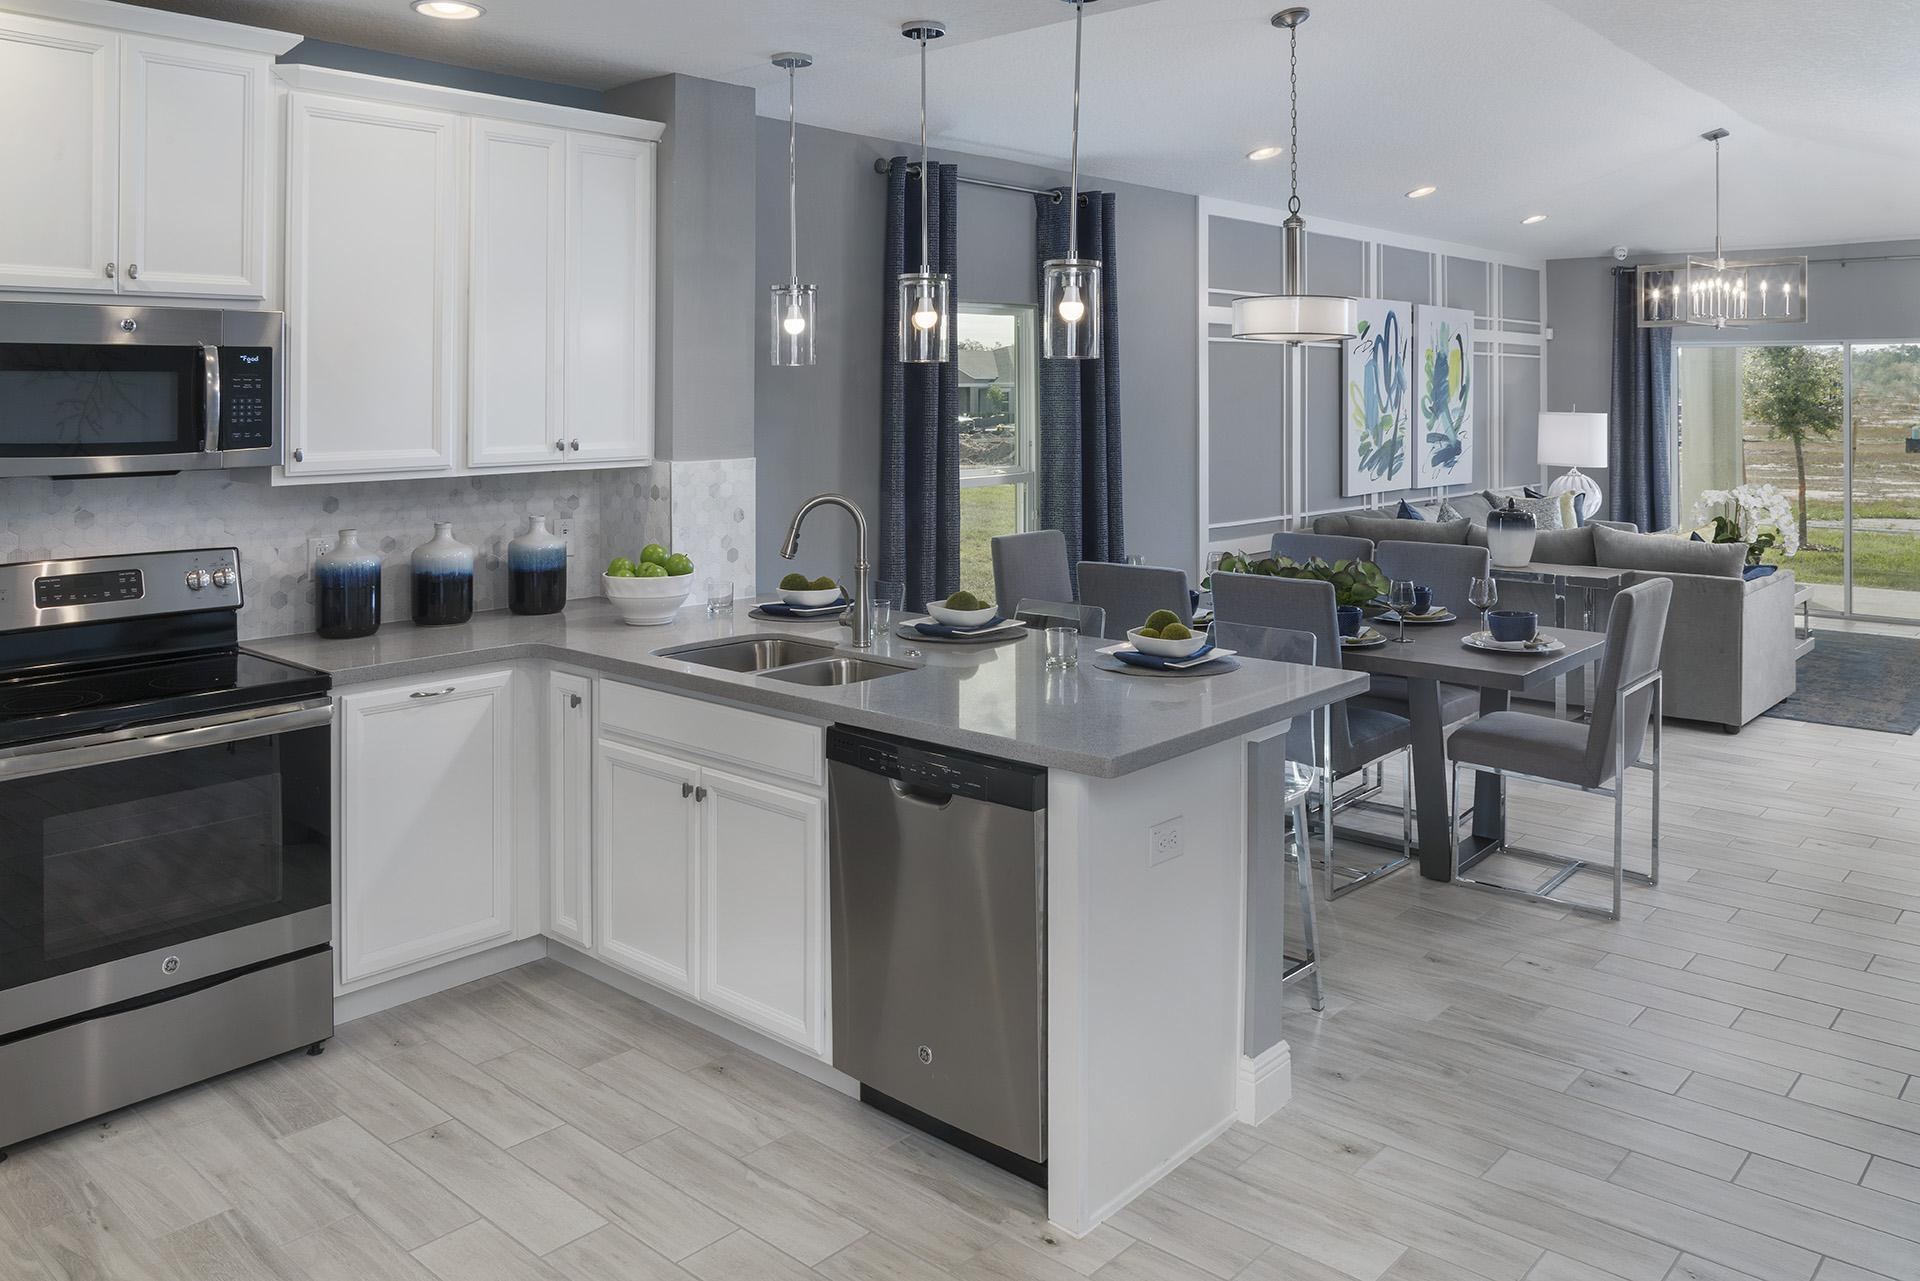 Kitchen featured in the Lexington By Hanover Family Builders in Lakeland-Winter Haven, FL